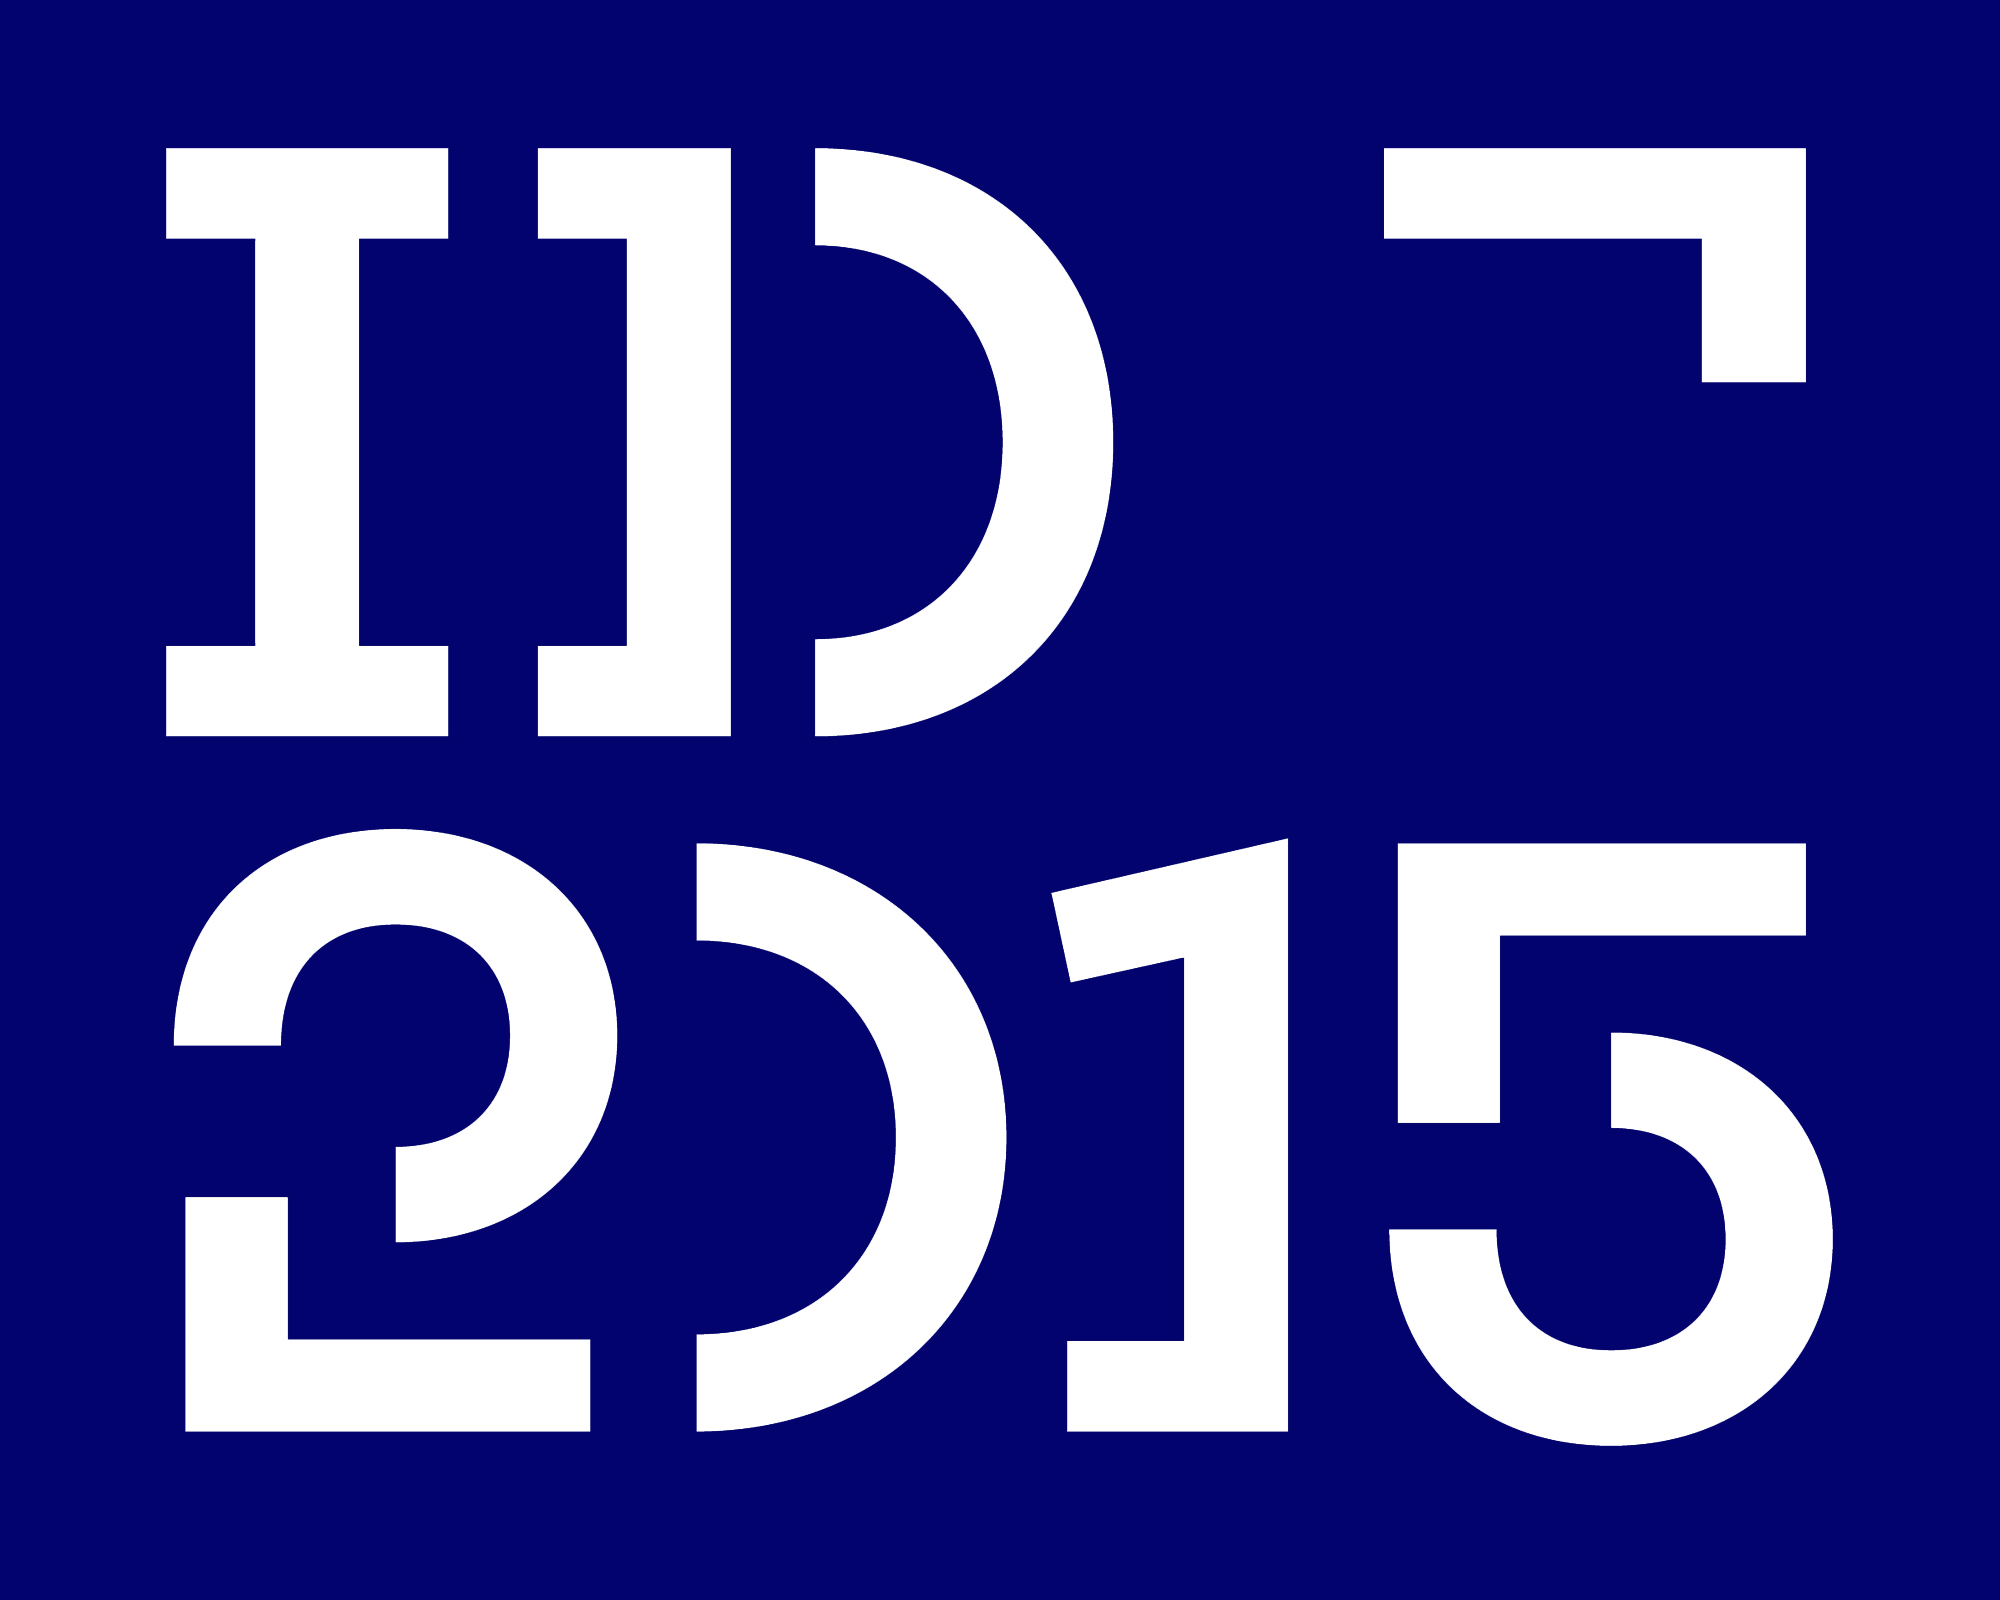 Cover image: ID2015 Visual Identity